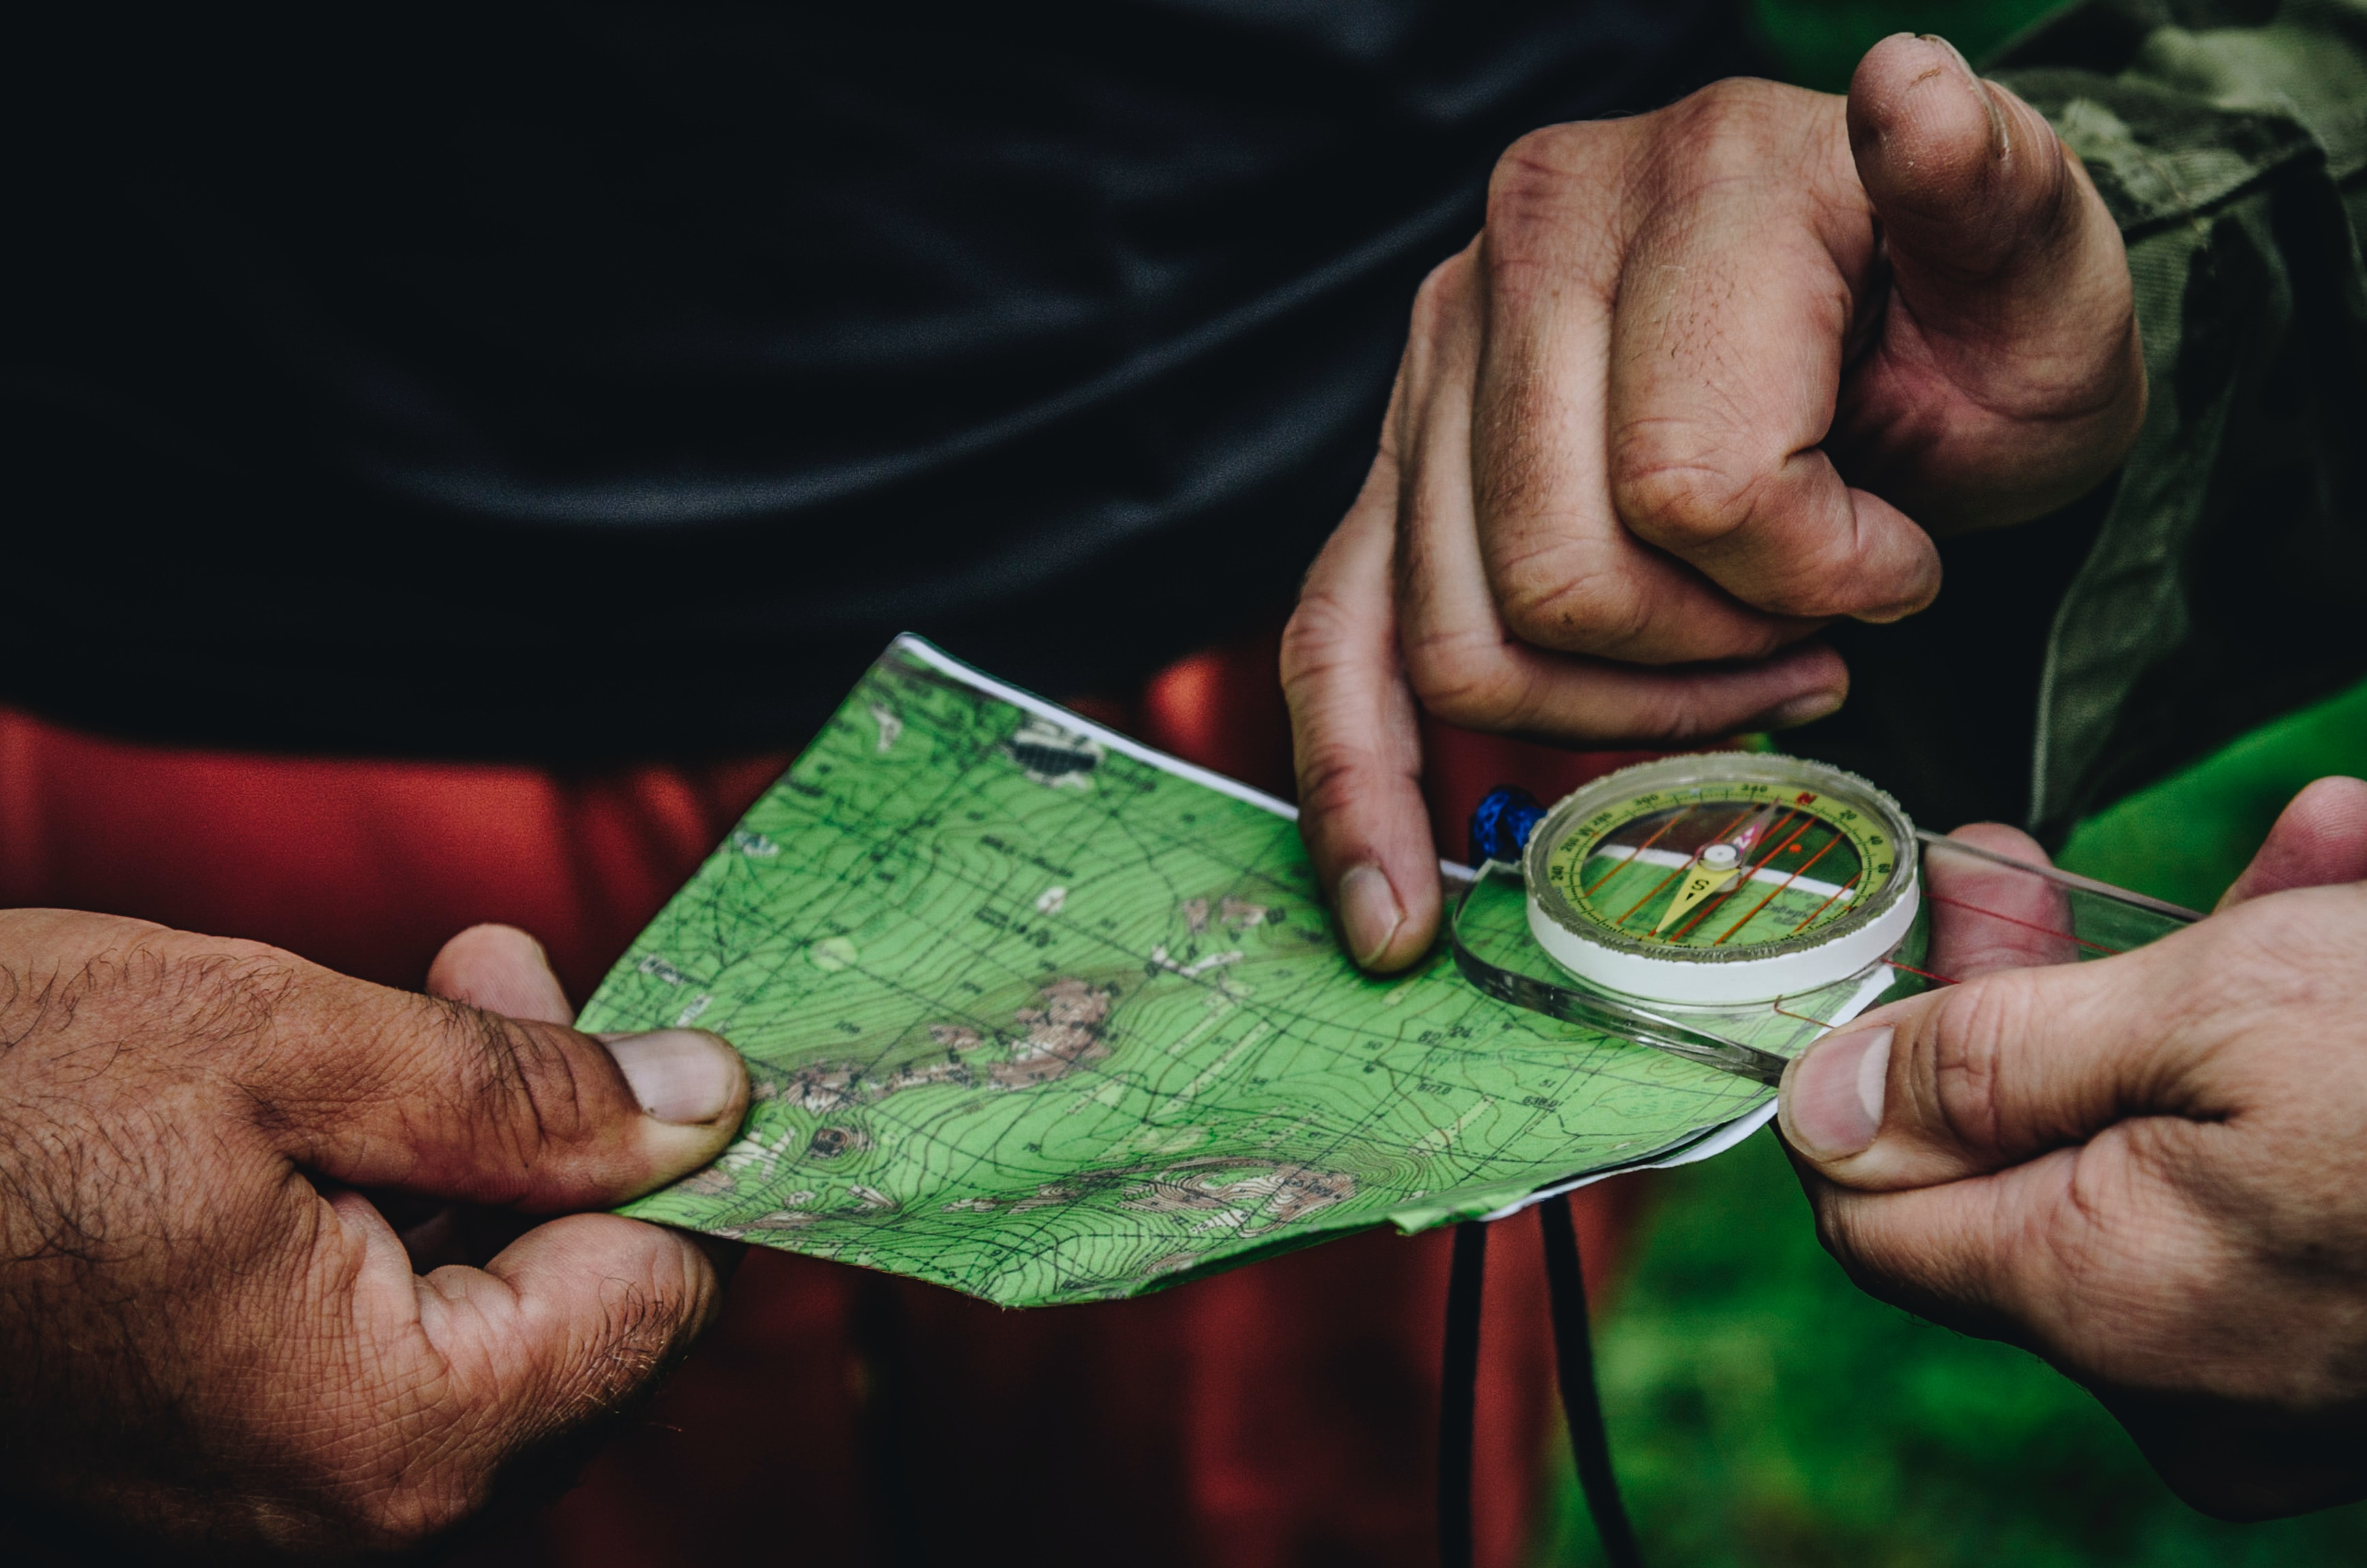 Two pairs of hands hold a map and a compass, as if to get bearings mid-journey.